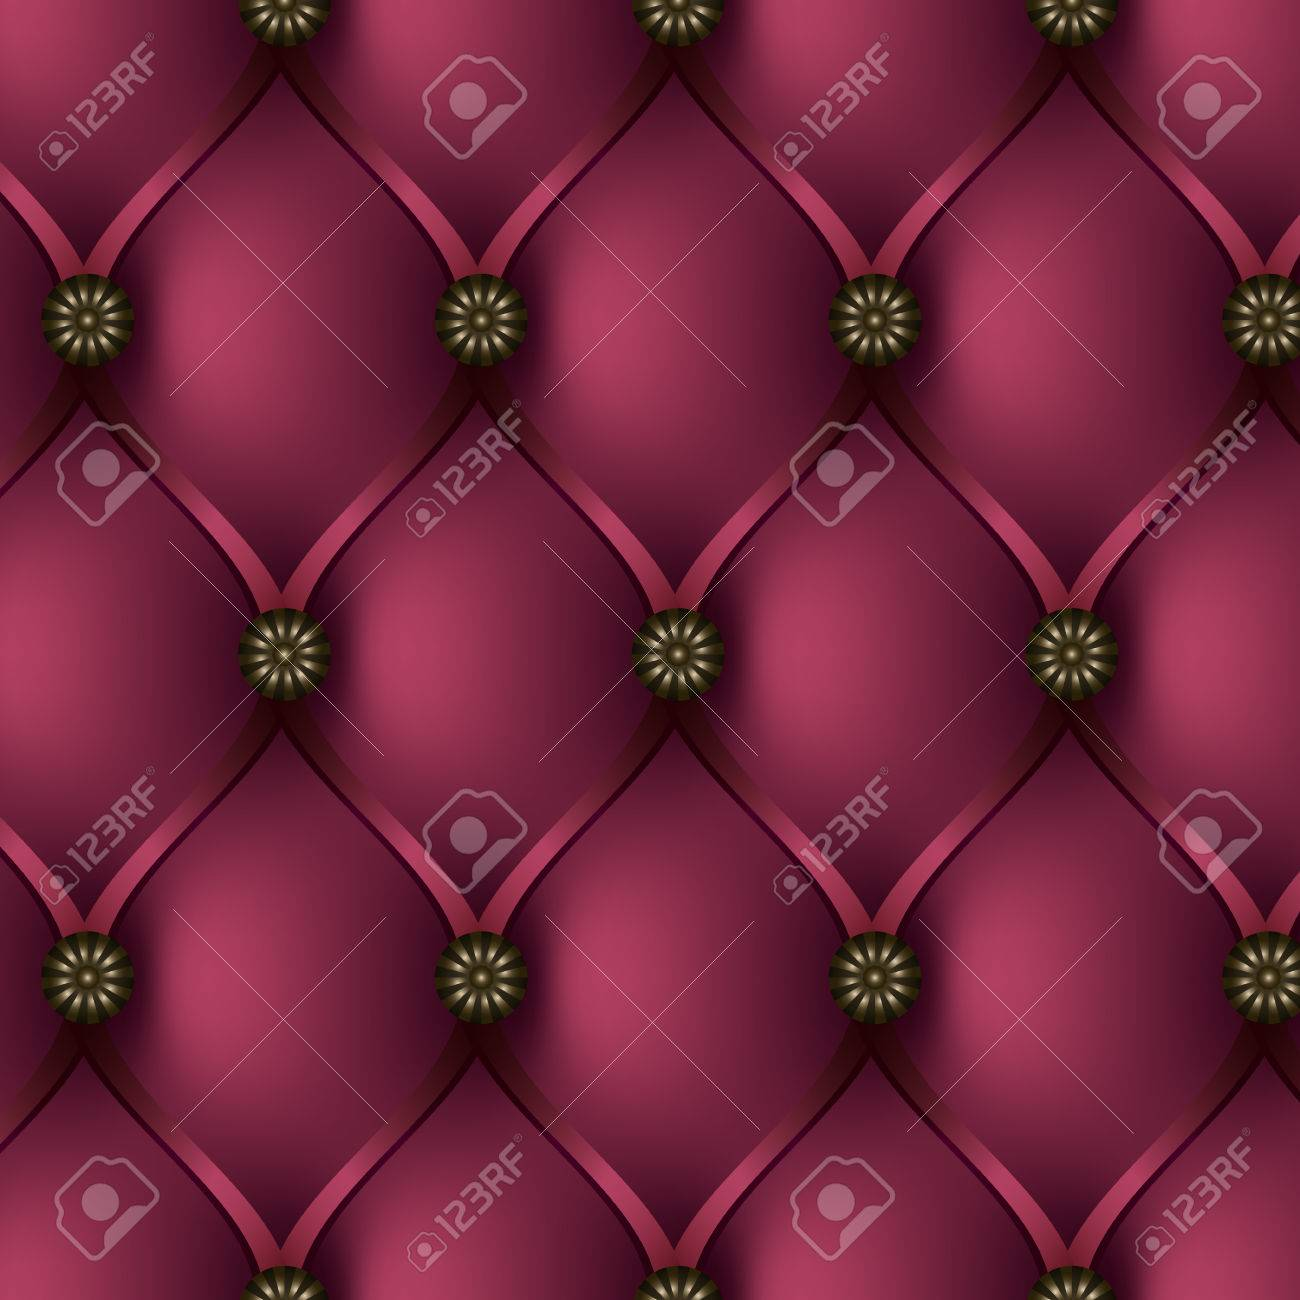 Sofa Texture Vector Seamless Vector Texture Leather Upholstery Sofa Buttoned Pink